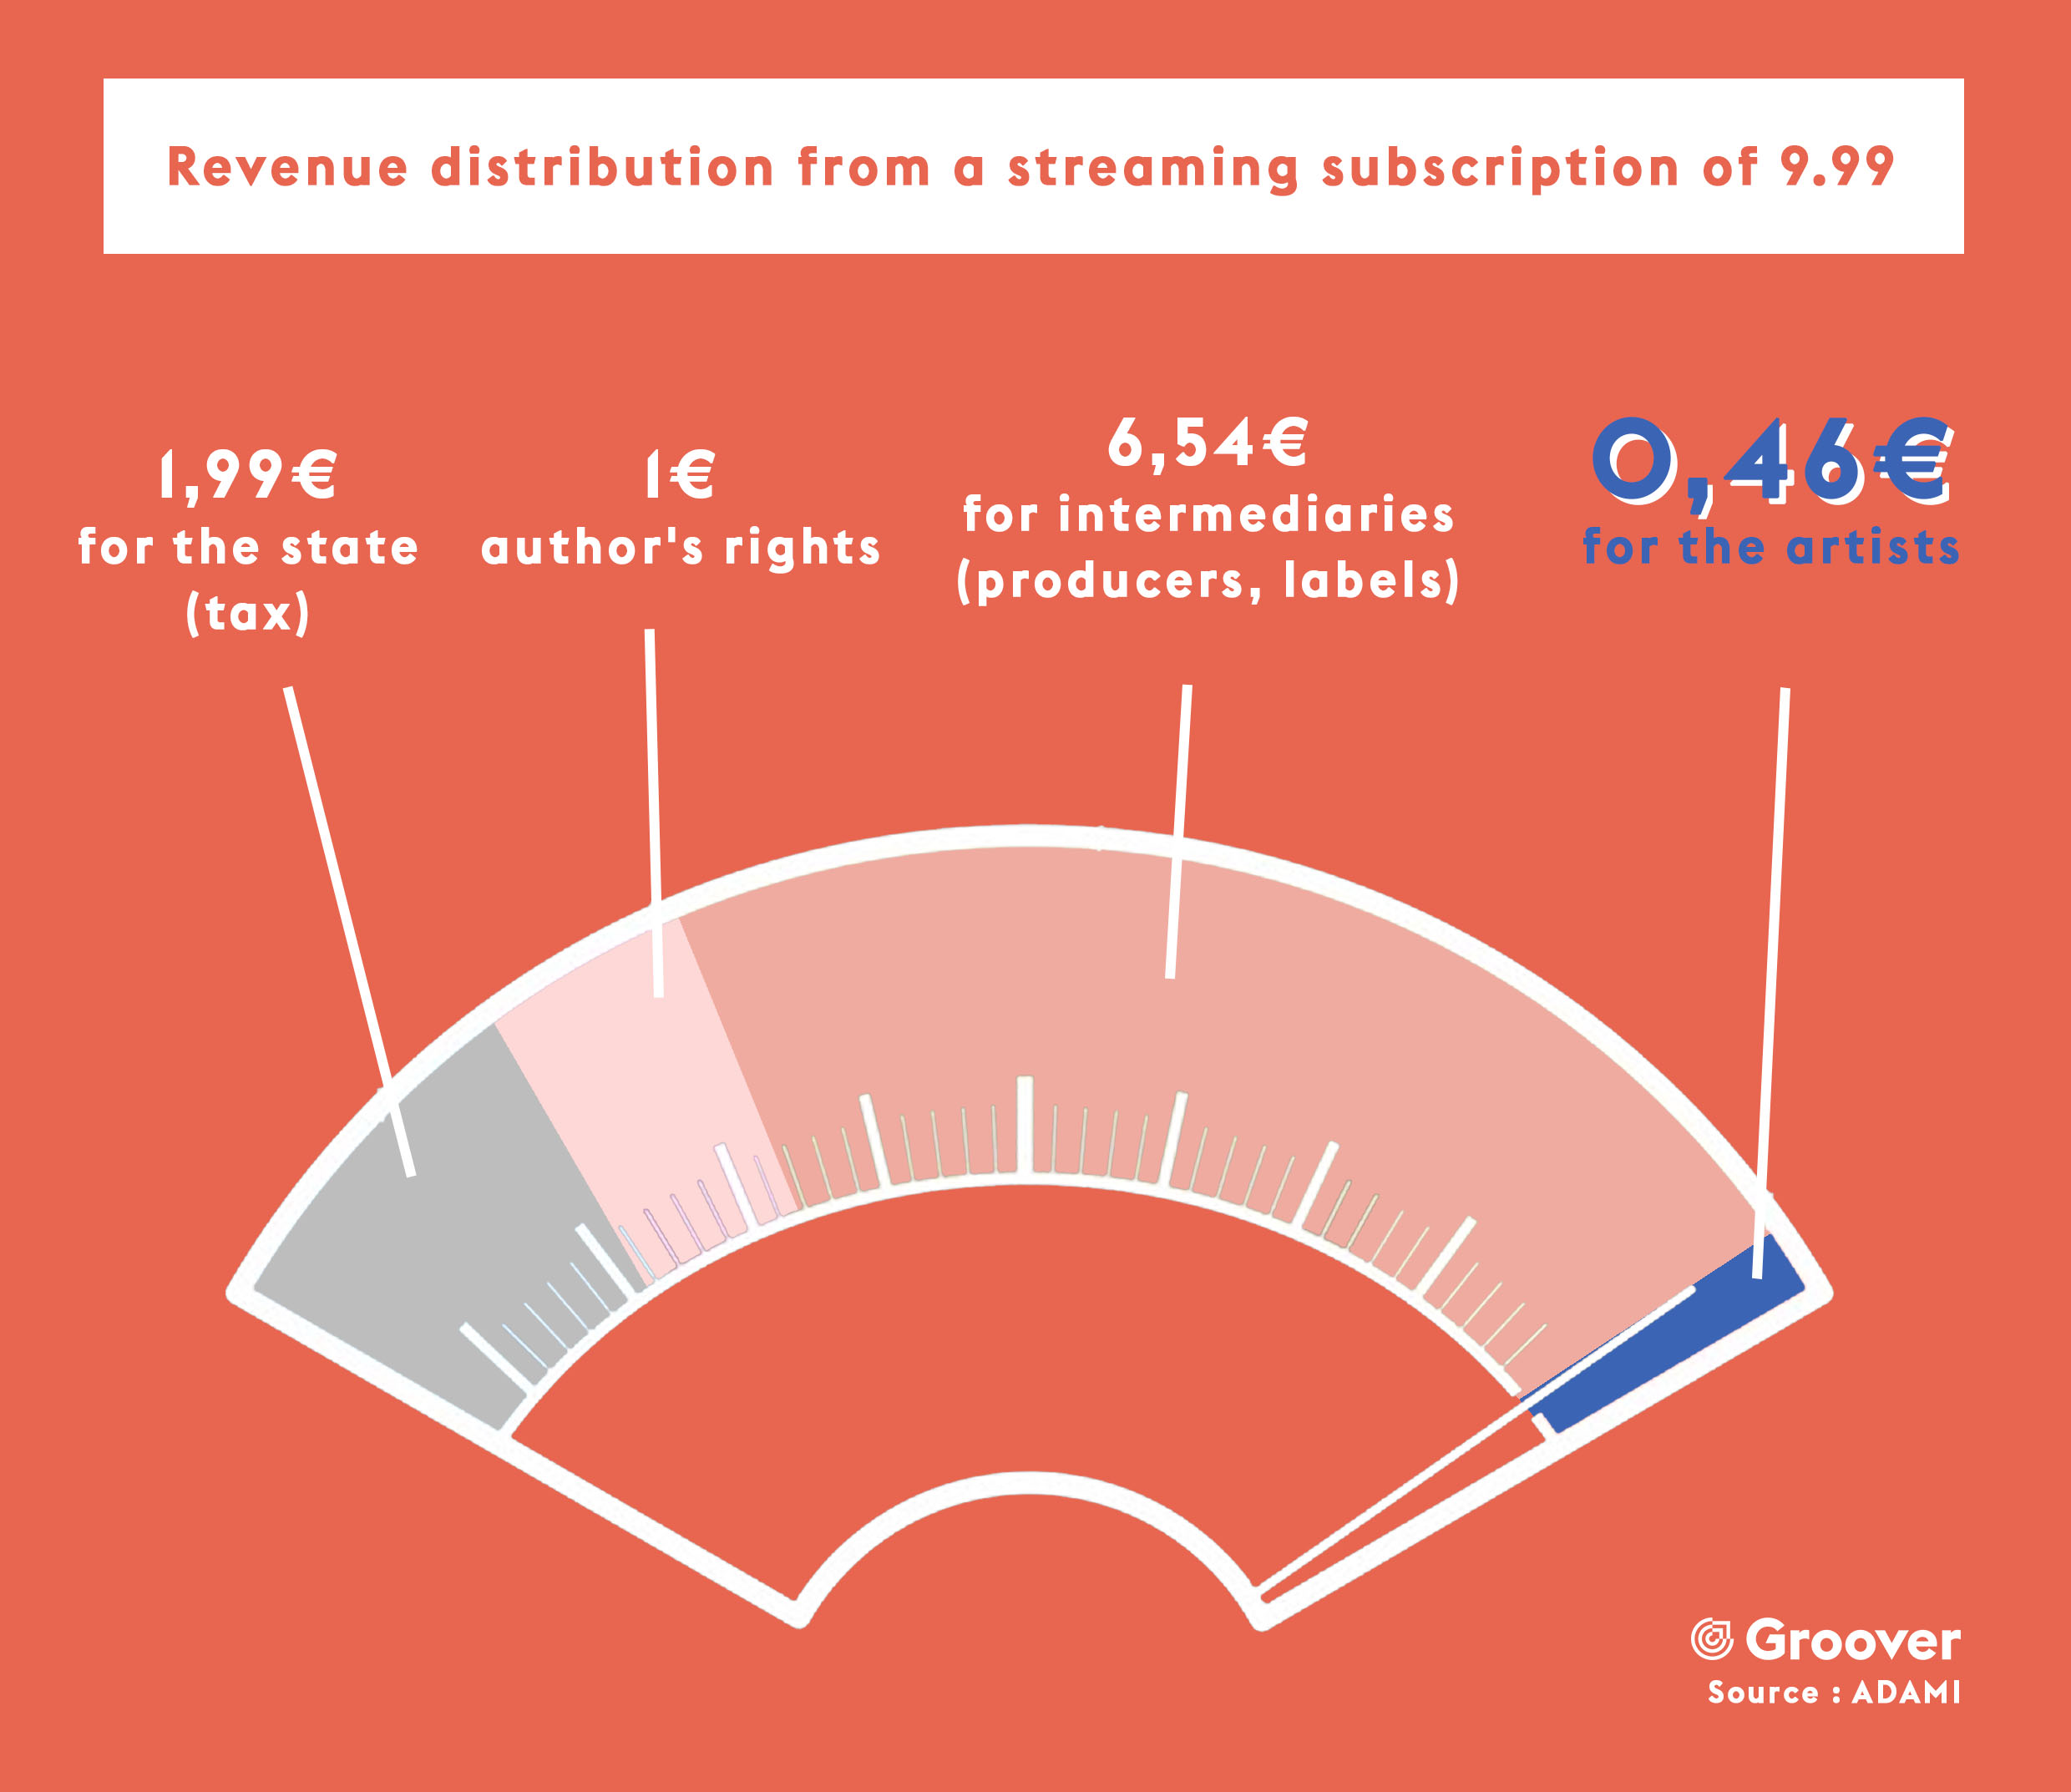 Revenue distribution from a streaming subscription of 9.99